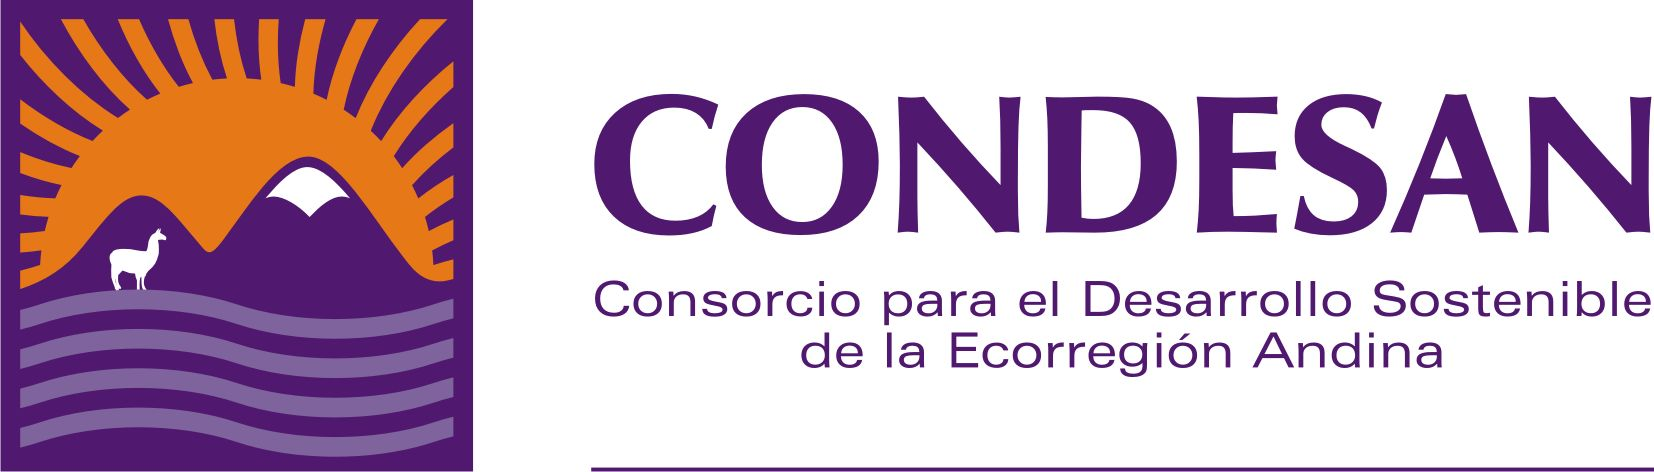 logo for Consortium for the Sustainable Development of the Andean Ecoregion